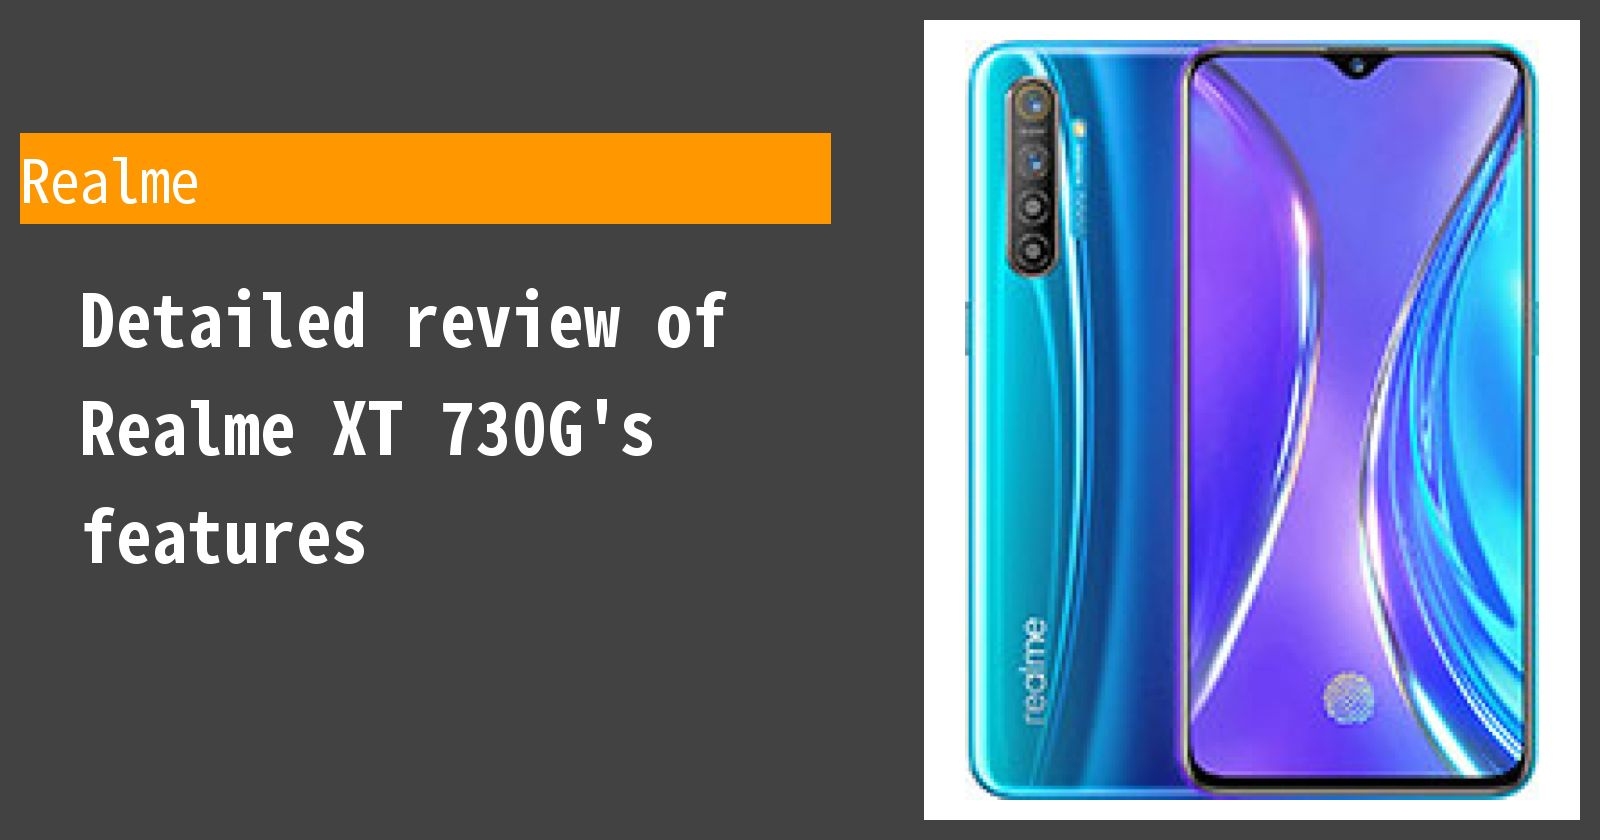 Detailed review of Realme XT 730G's features